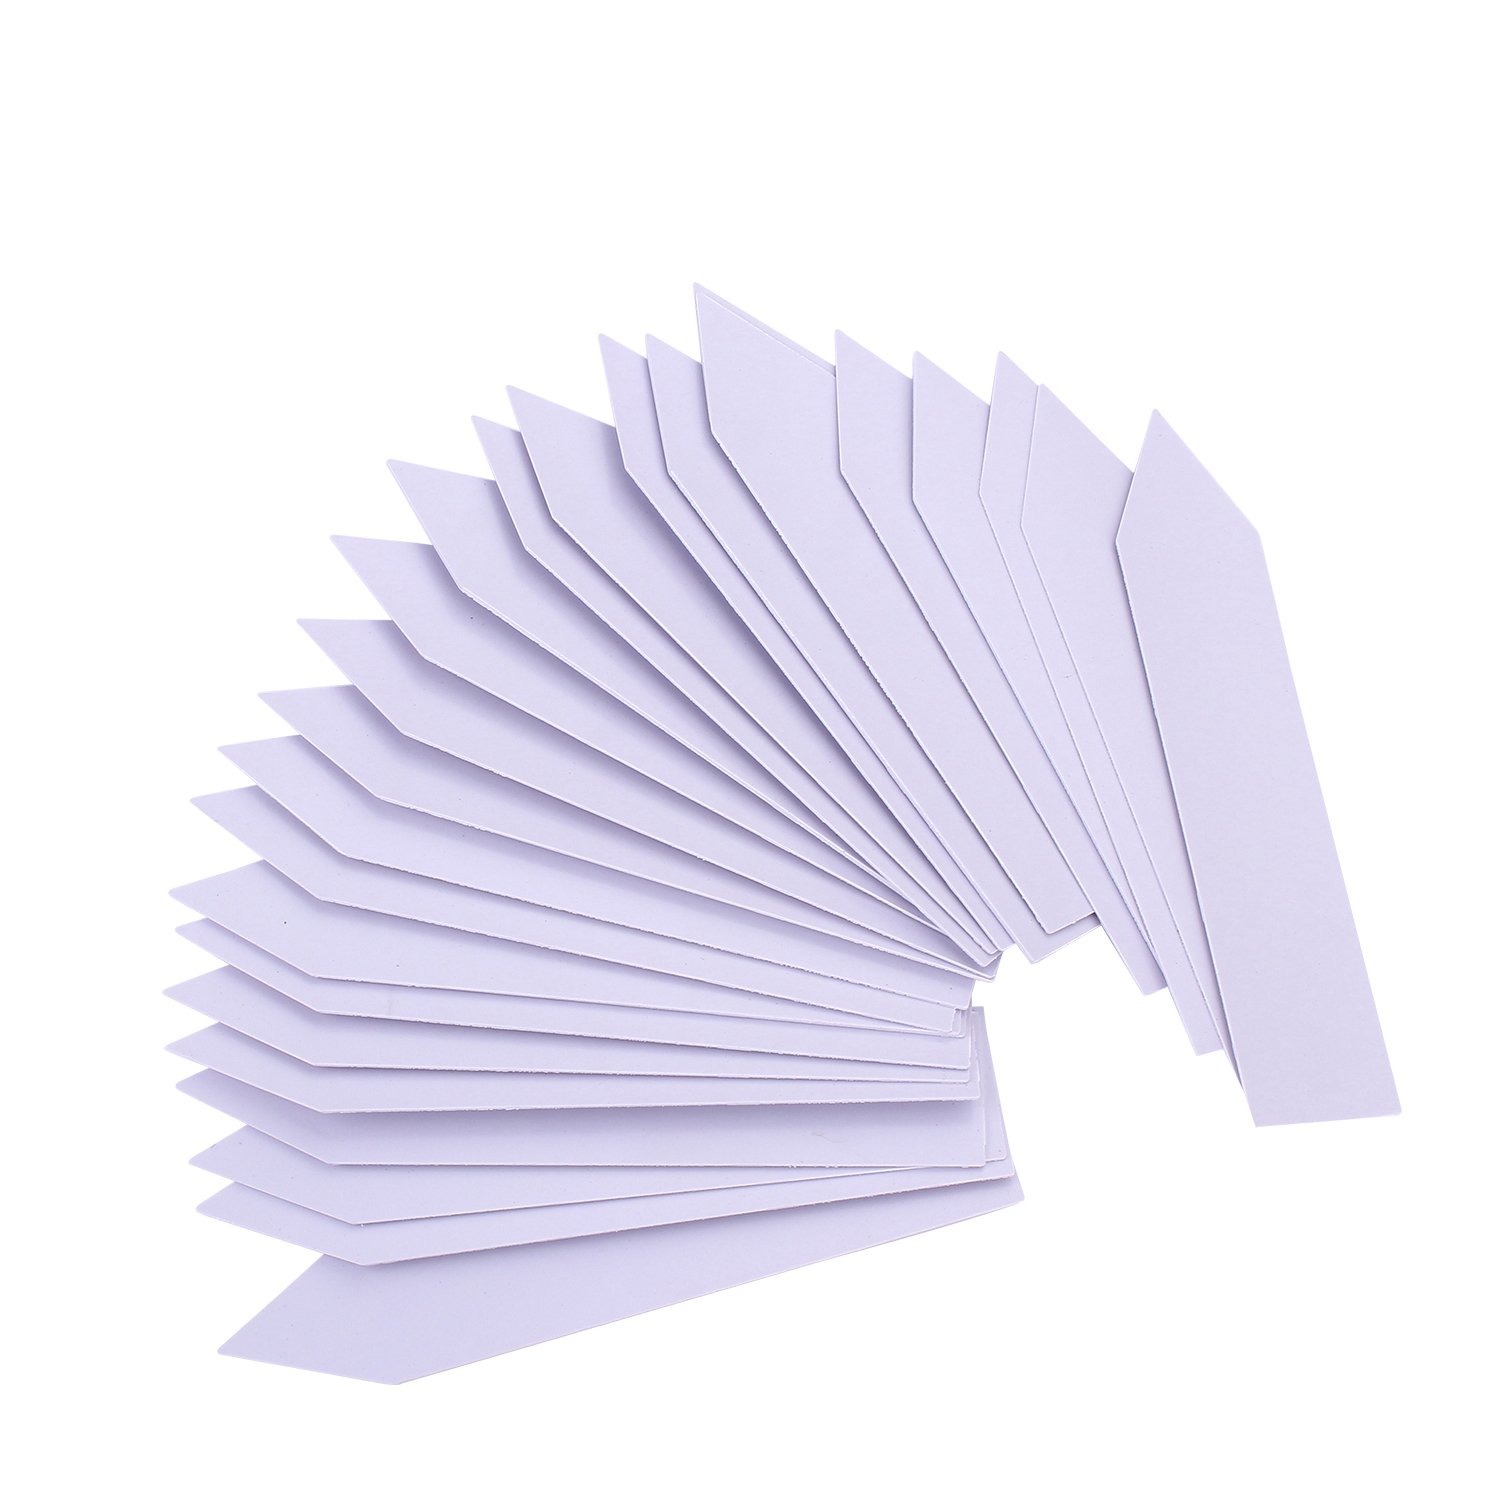 100 Pcs PVC Waterproof Plant reusable Markers & Labels, Nursery Garden Tags, white 10*2 cm moinkerin